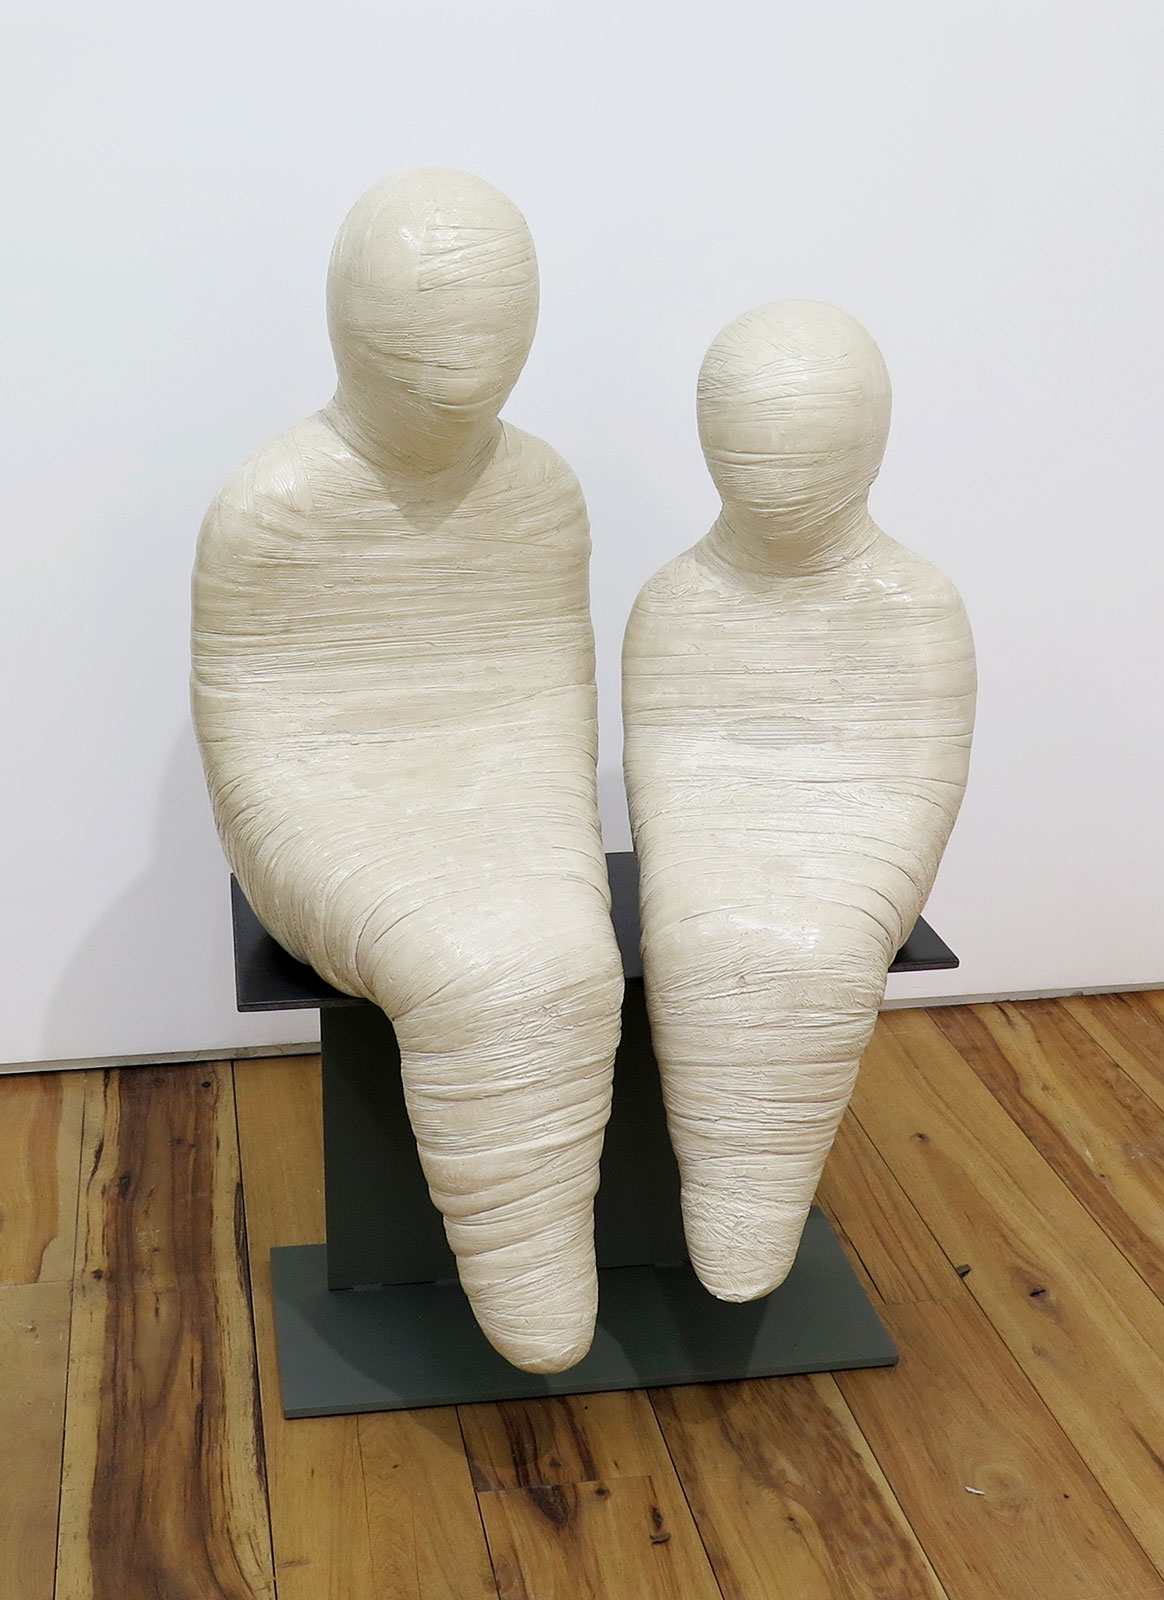 Emil Alzamora 2015 Gypsum and Steel 42 1/2 x 25 1/2 x 18 inches / 108 x 65 x 46 cm 2015 Marc Straus Gallery